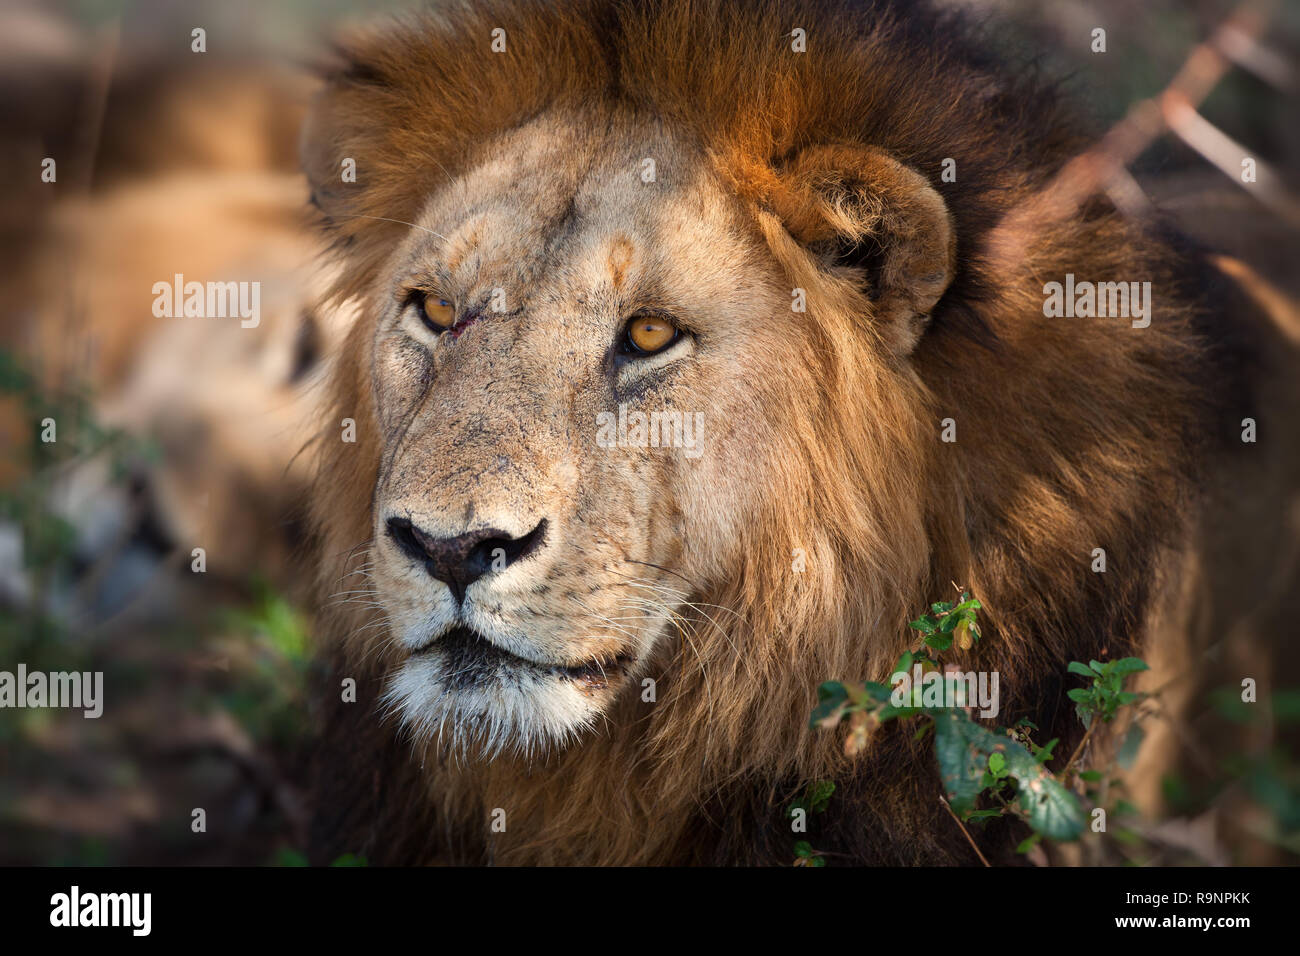 King of Beasts.jpg - Stock Image